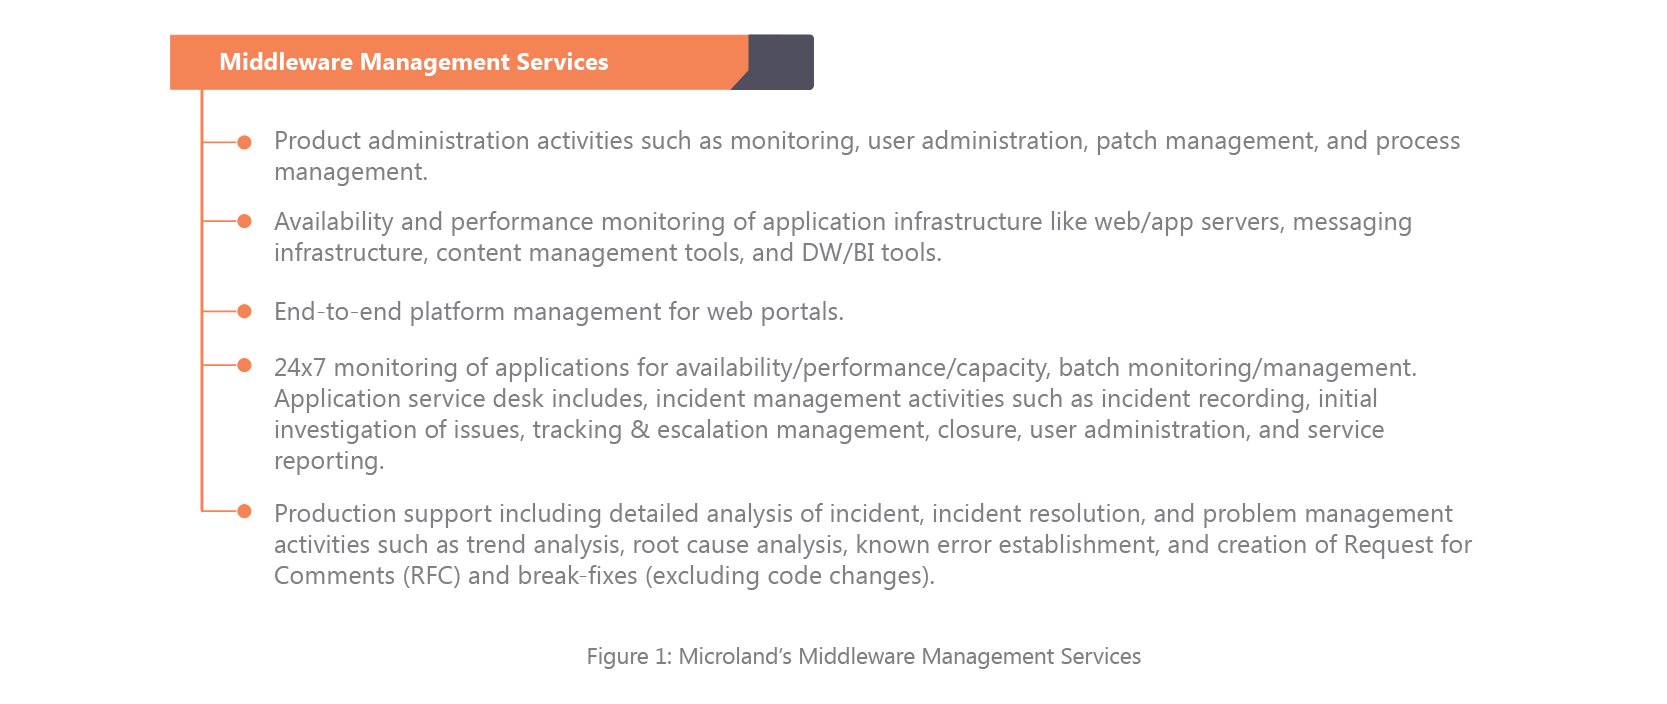 Middleware Management